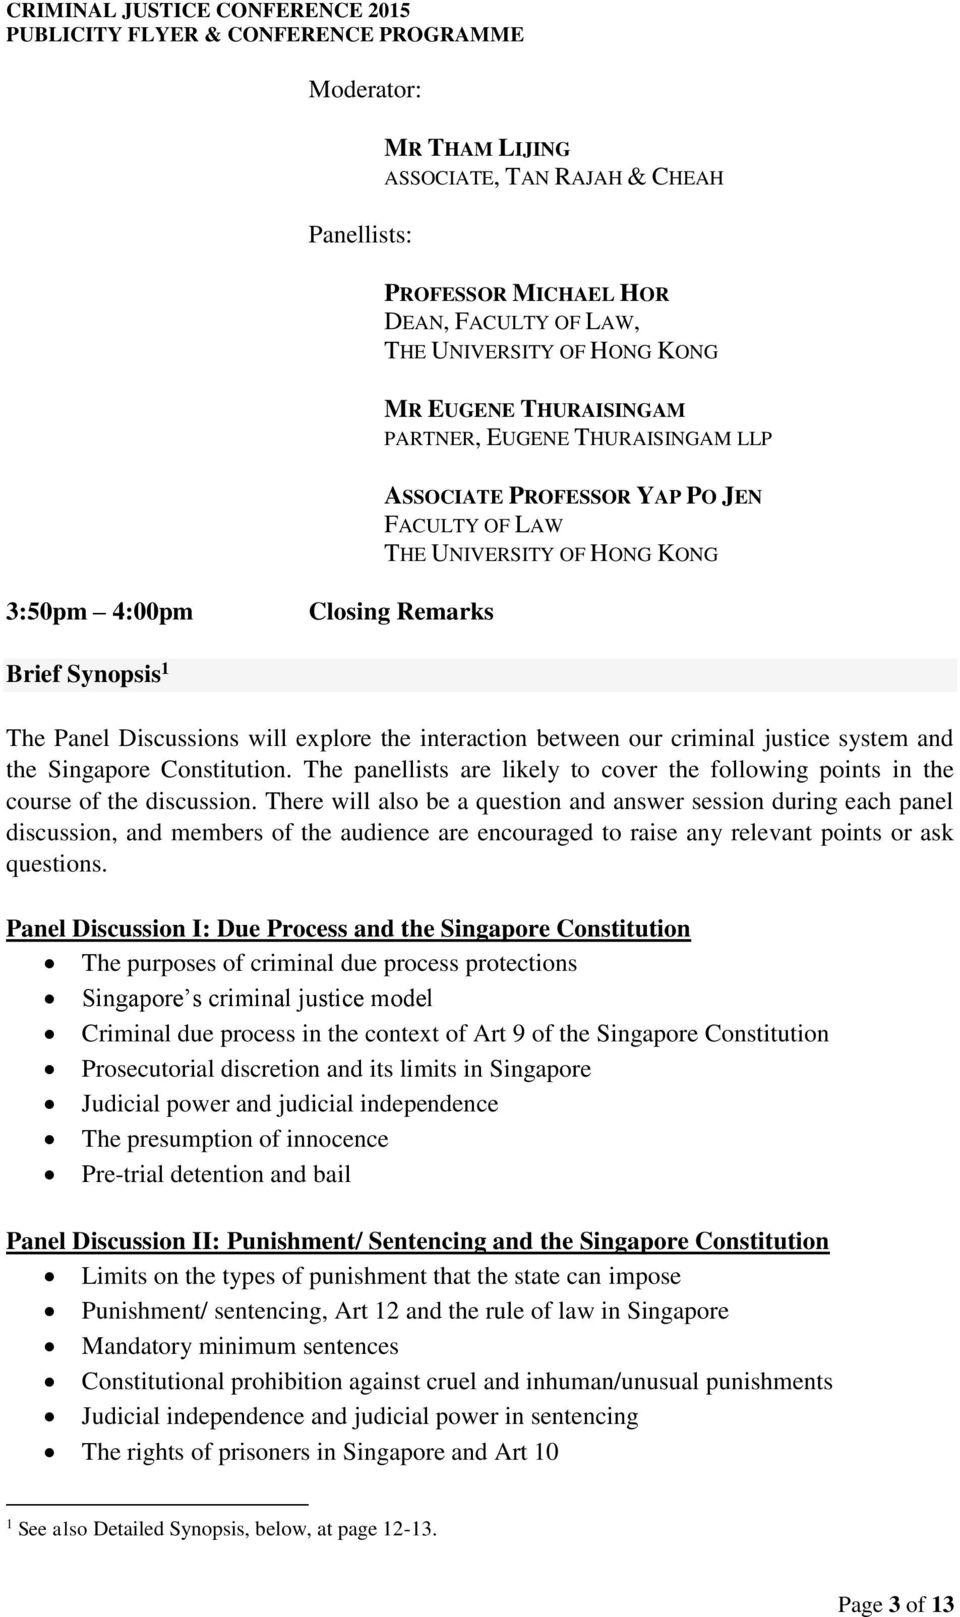 justice system and the Singapore Constitution. The panellists are likely to cover the following points in the course of the discussion.